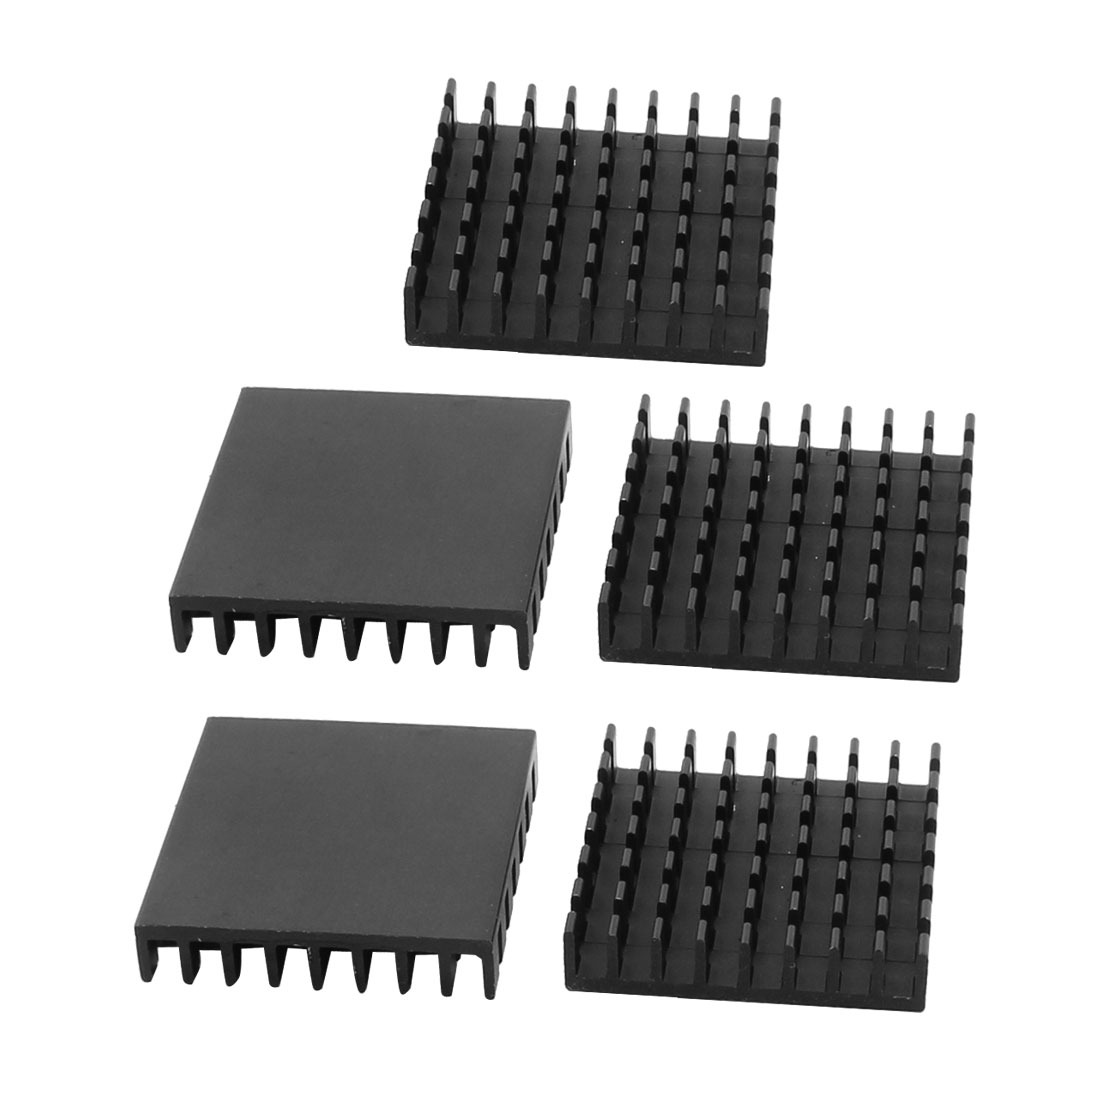 5pcs 28x28x6mm Aluminium Square Heatsink Heat Diffusion Cooling Cooler Fin Black